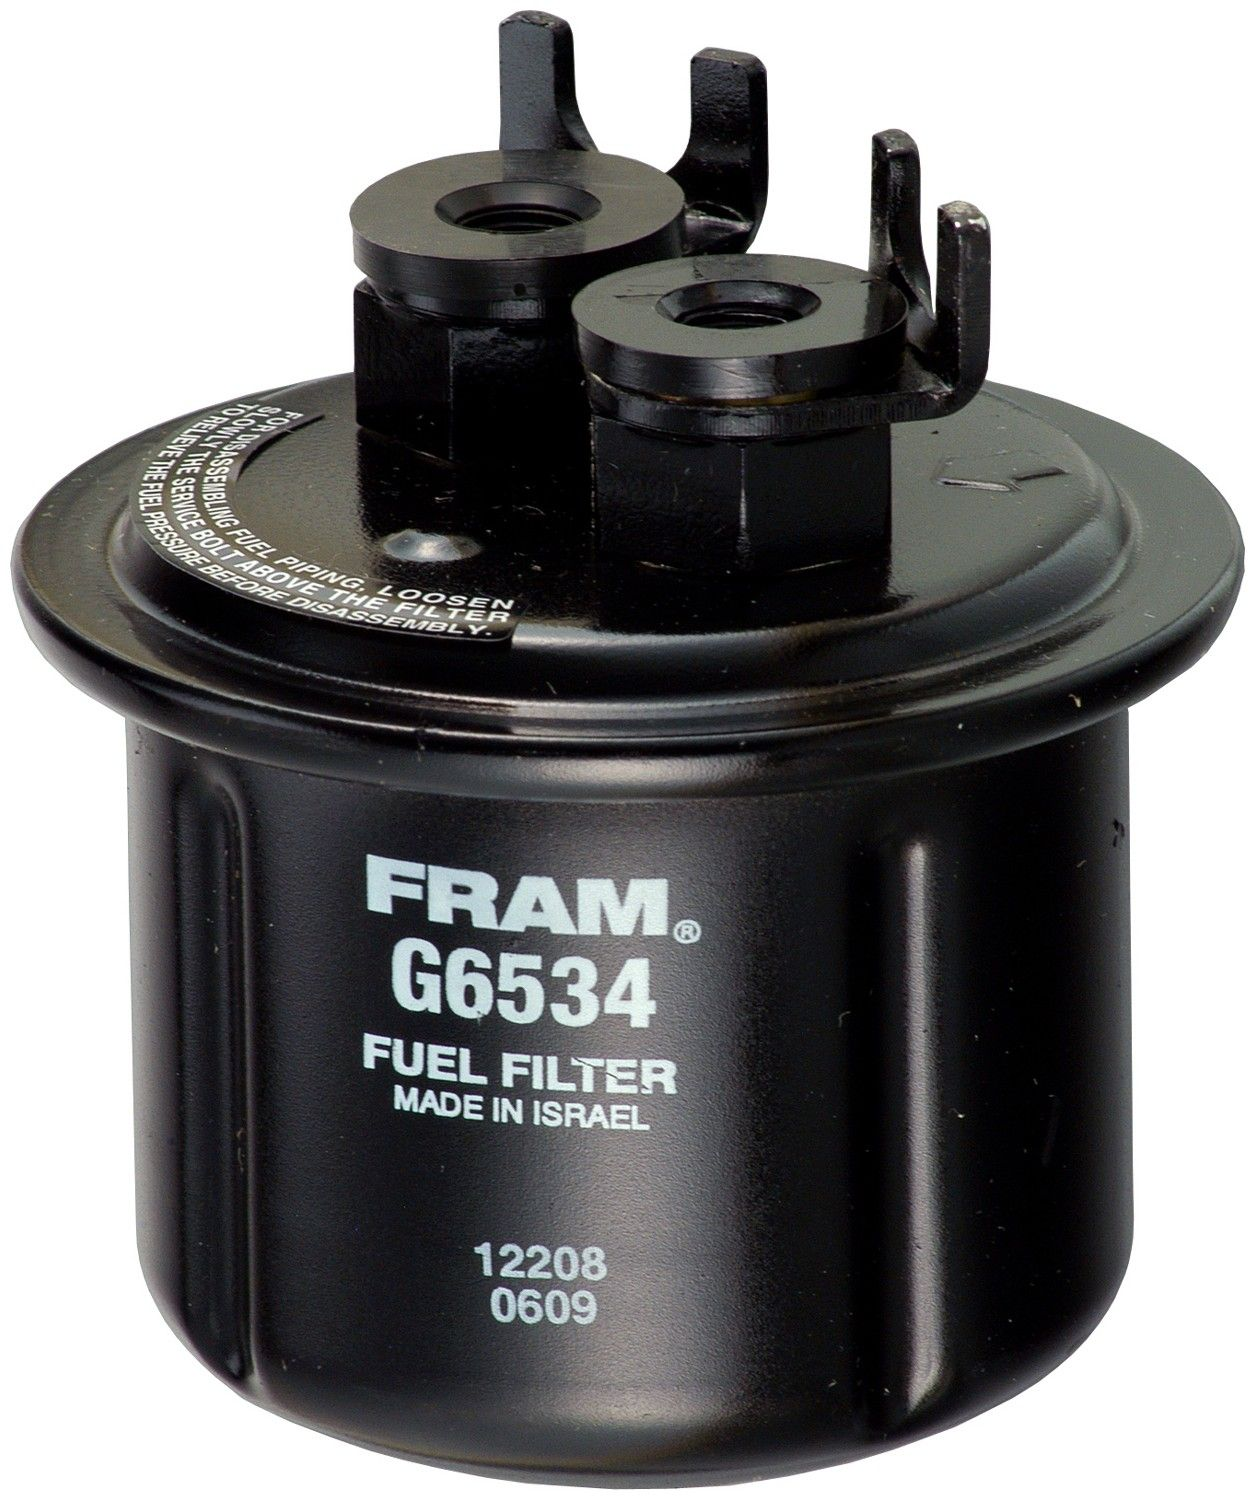 Honda Civic Fuel Filter Replacement Beck Arnley Fram Genuine 2011 1988 4 Cyl 15l G6534 In Line Unit Box Product